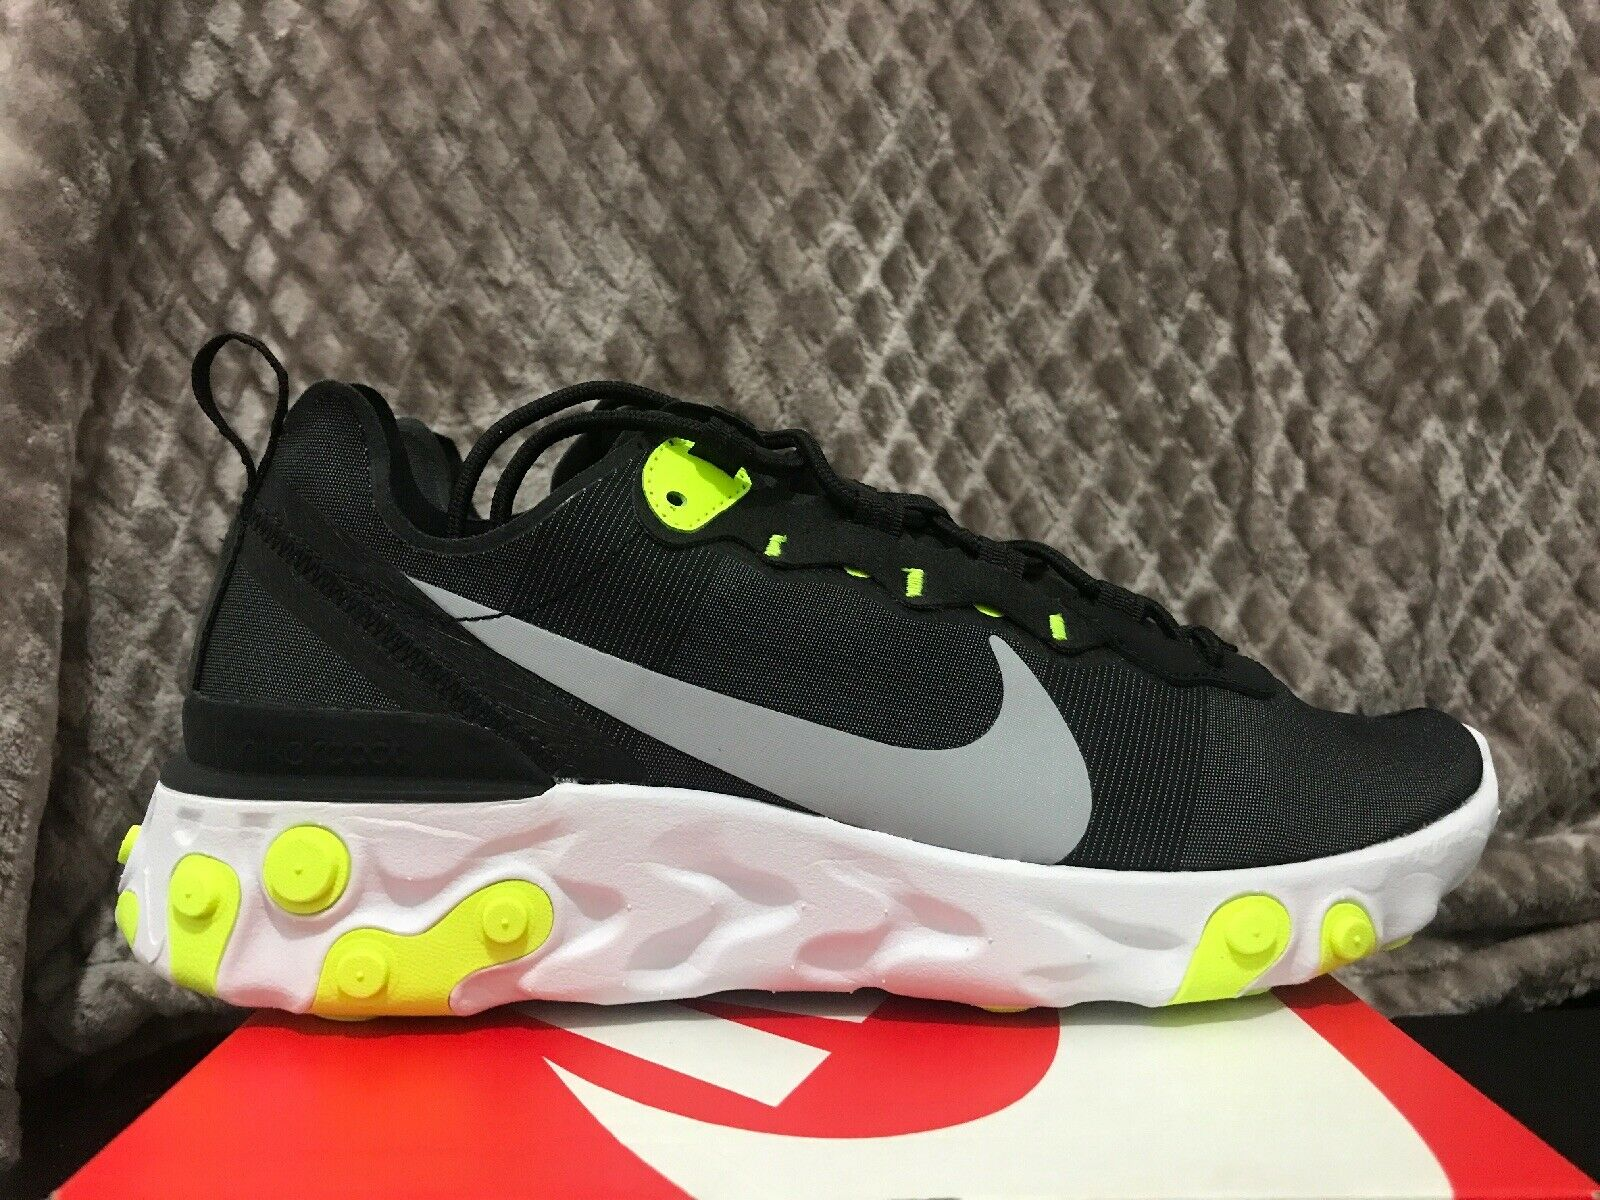 Nike Element React 55 Volt Size 8.5 Running shoes